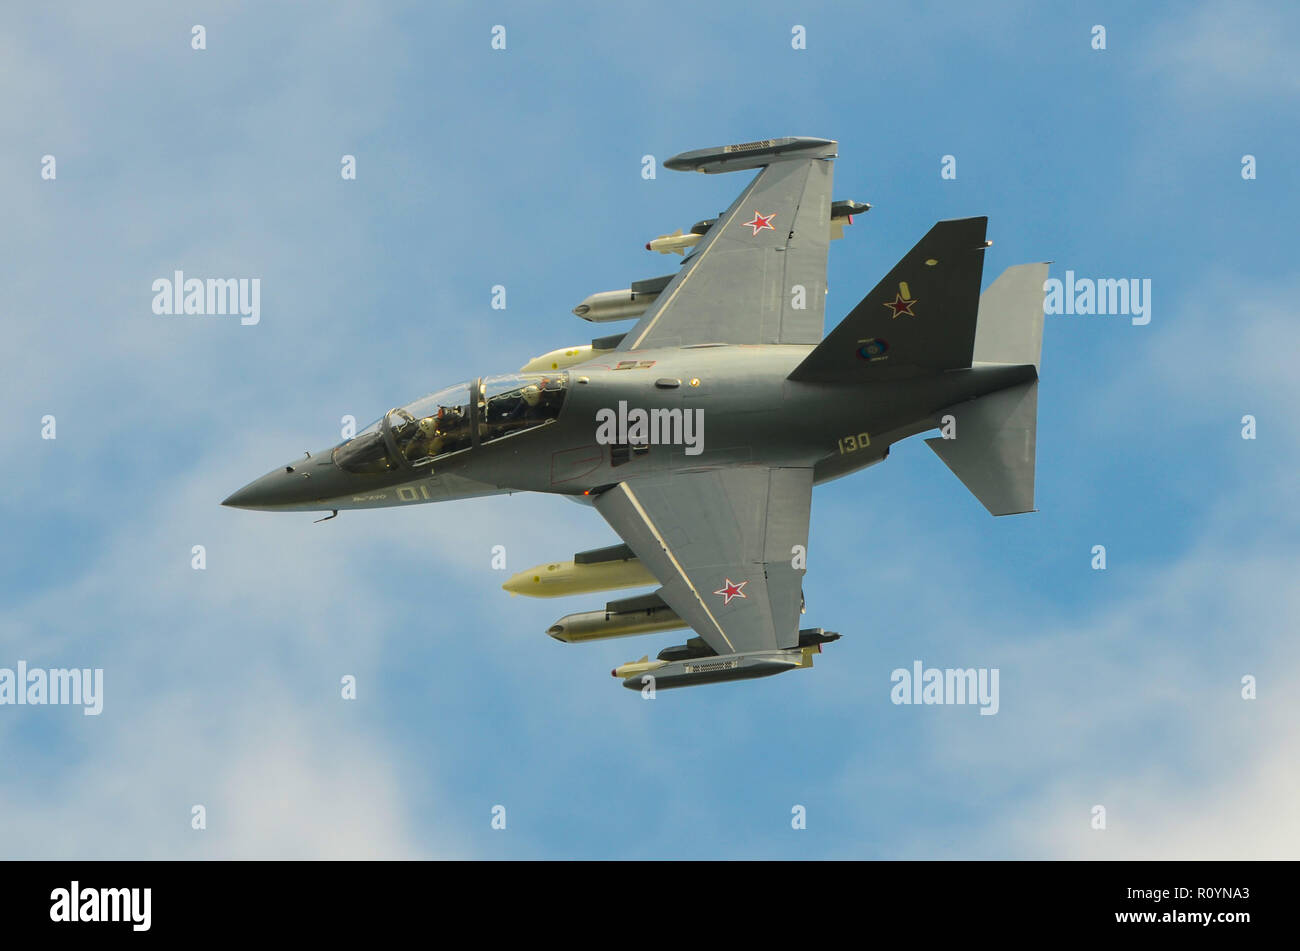 Yakovlev Yak-130 NATO subsonic two-seat advanced jet trainer and light fighter originally developed by Yakovlev and Aermacchi. Russian Air Force plane - Stock Image